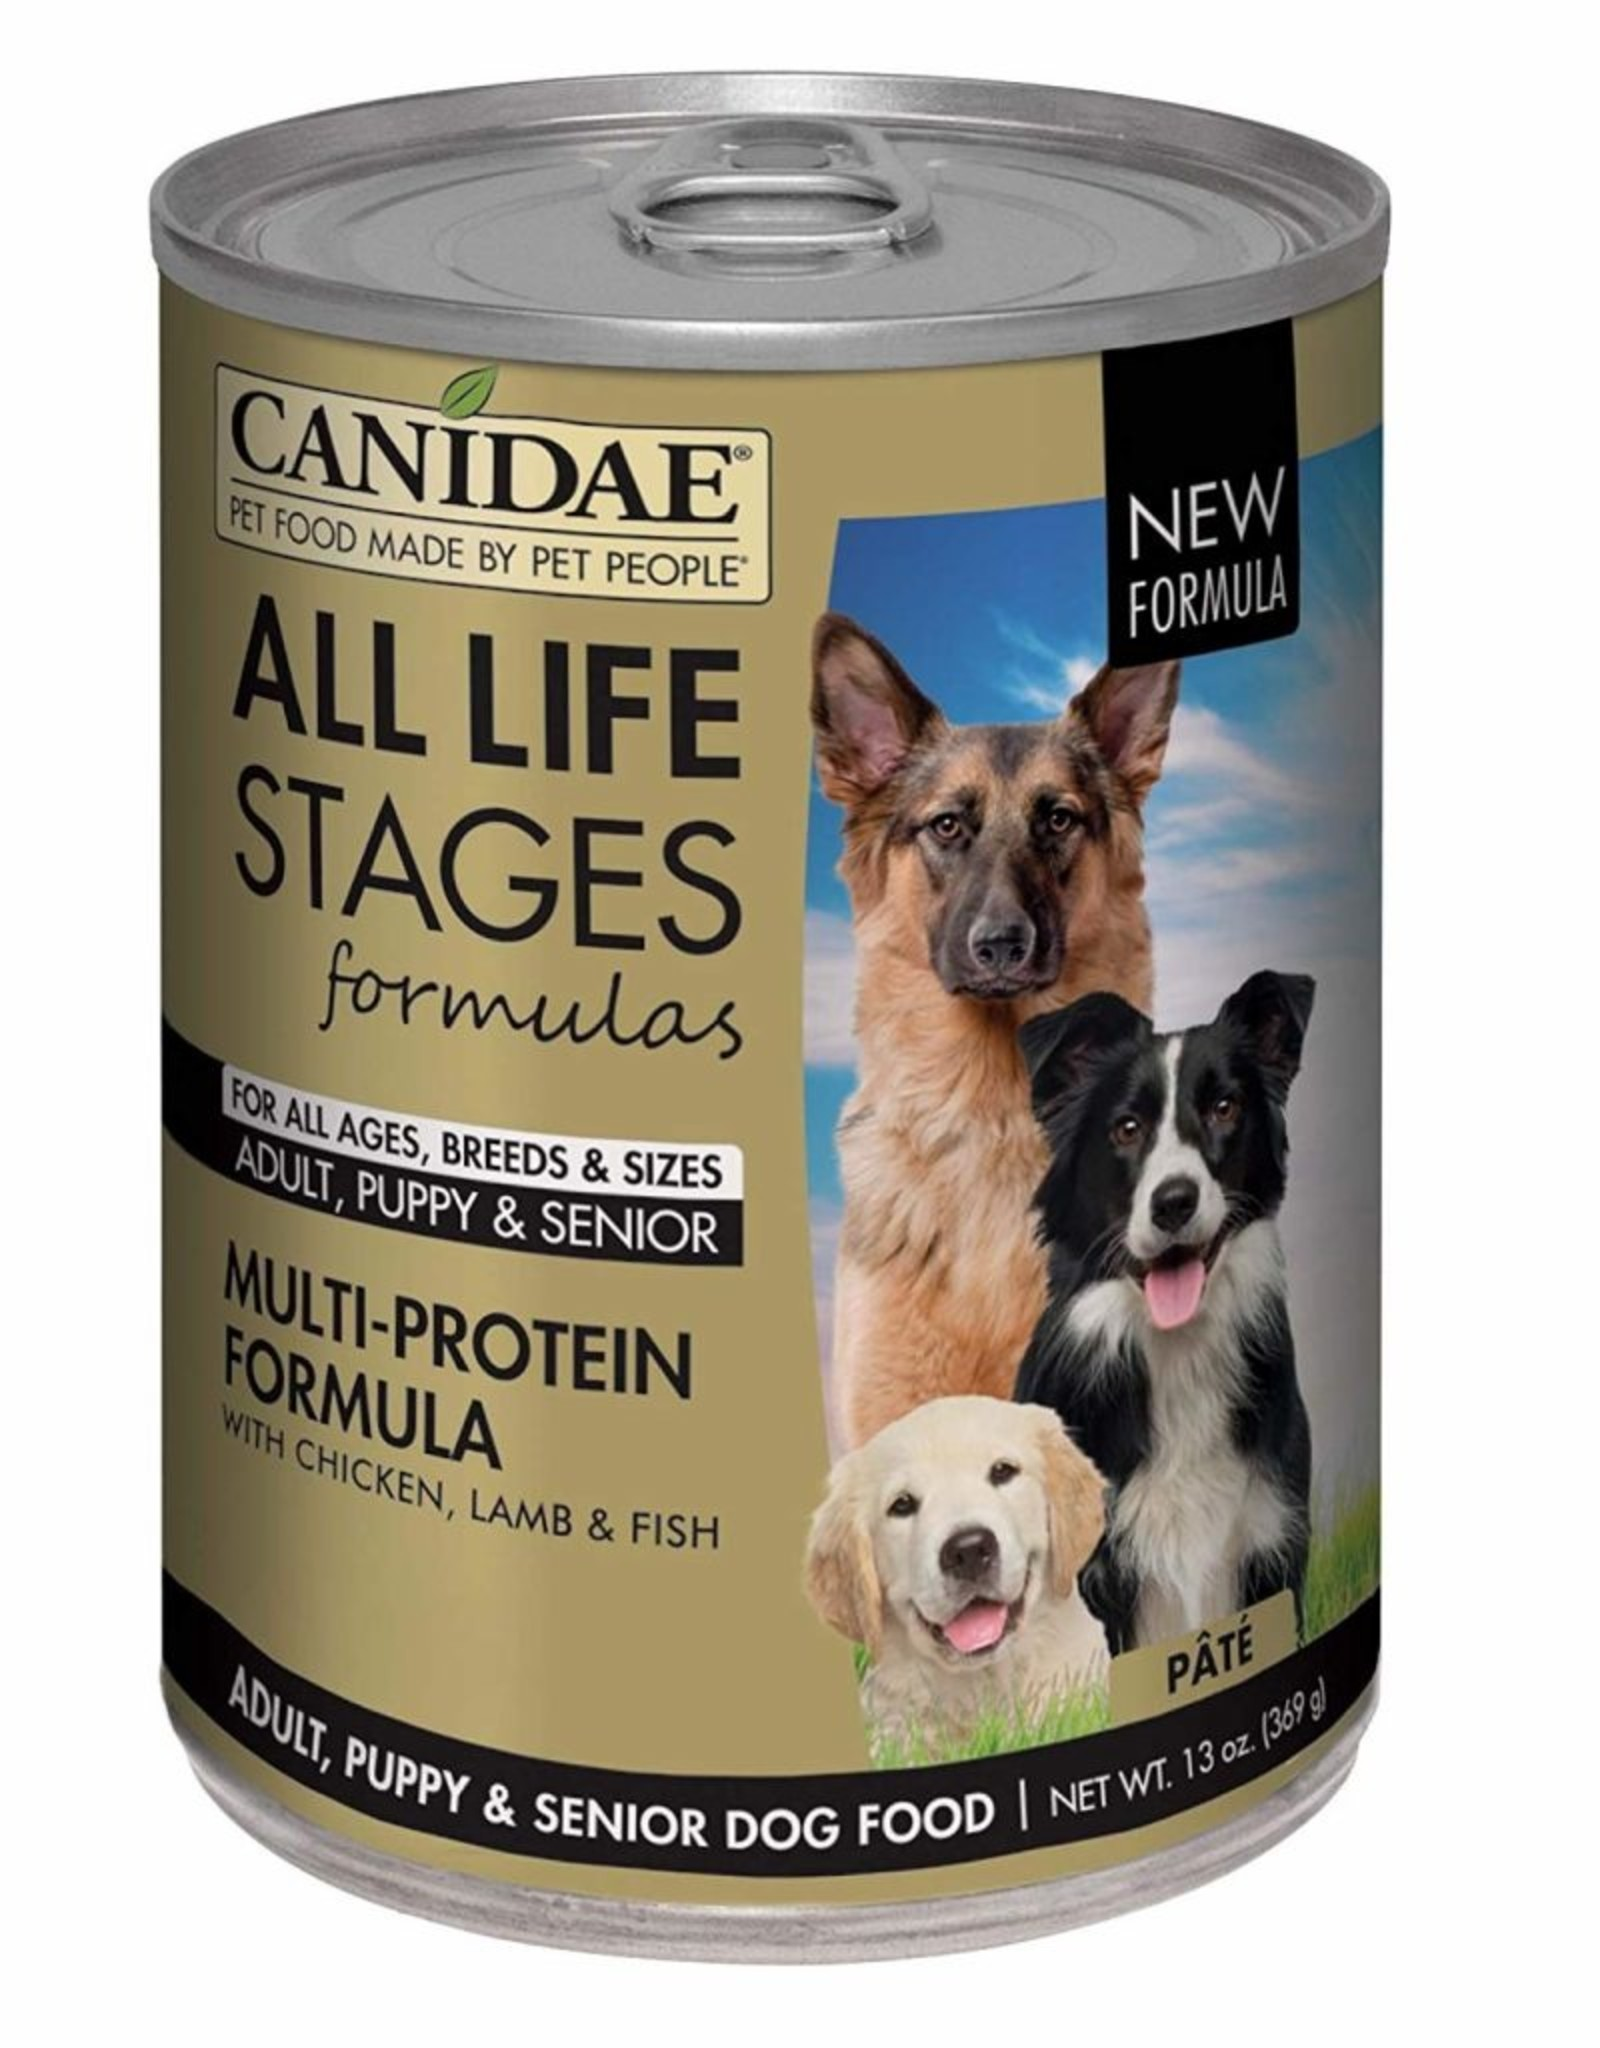 CANIDAE PET FOODS CANIDAE DOG CAN ALL LIFE STAGES MULTI-PROTEIN 13.2 OZ CASE OF 12